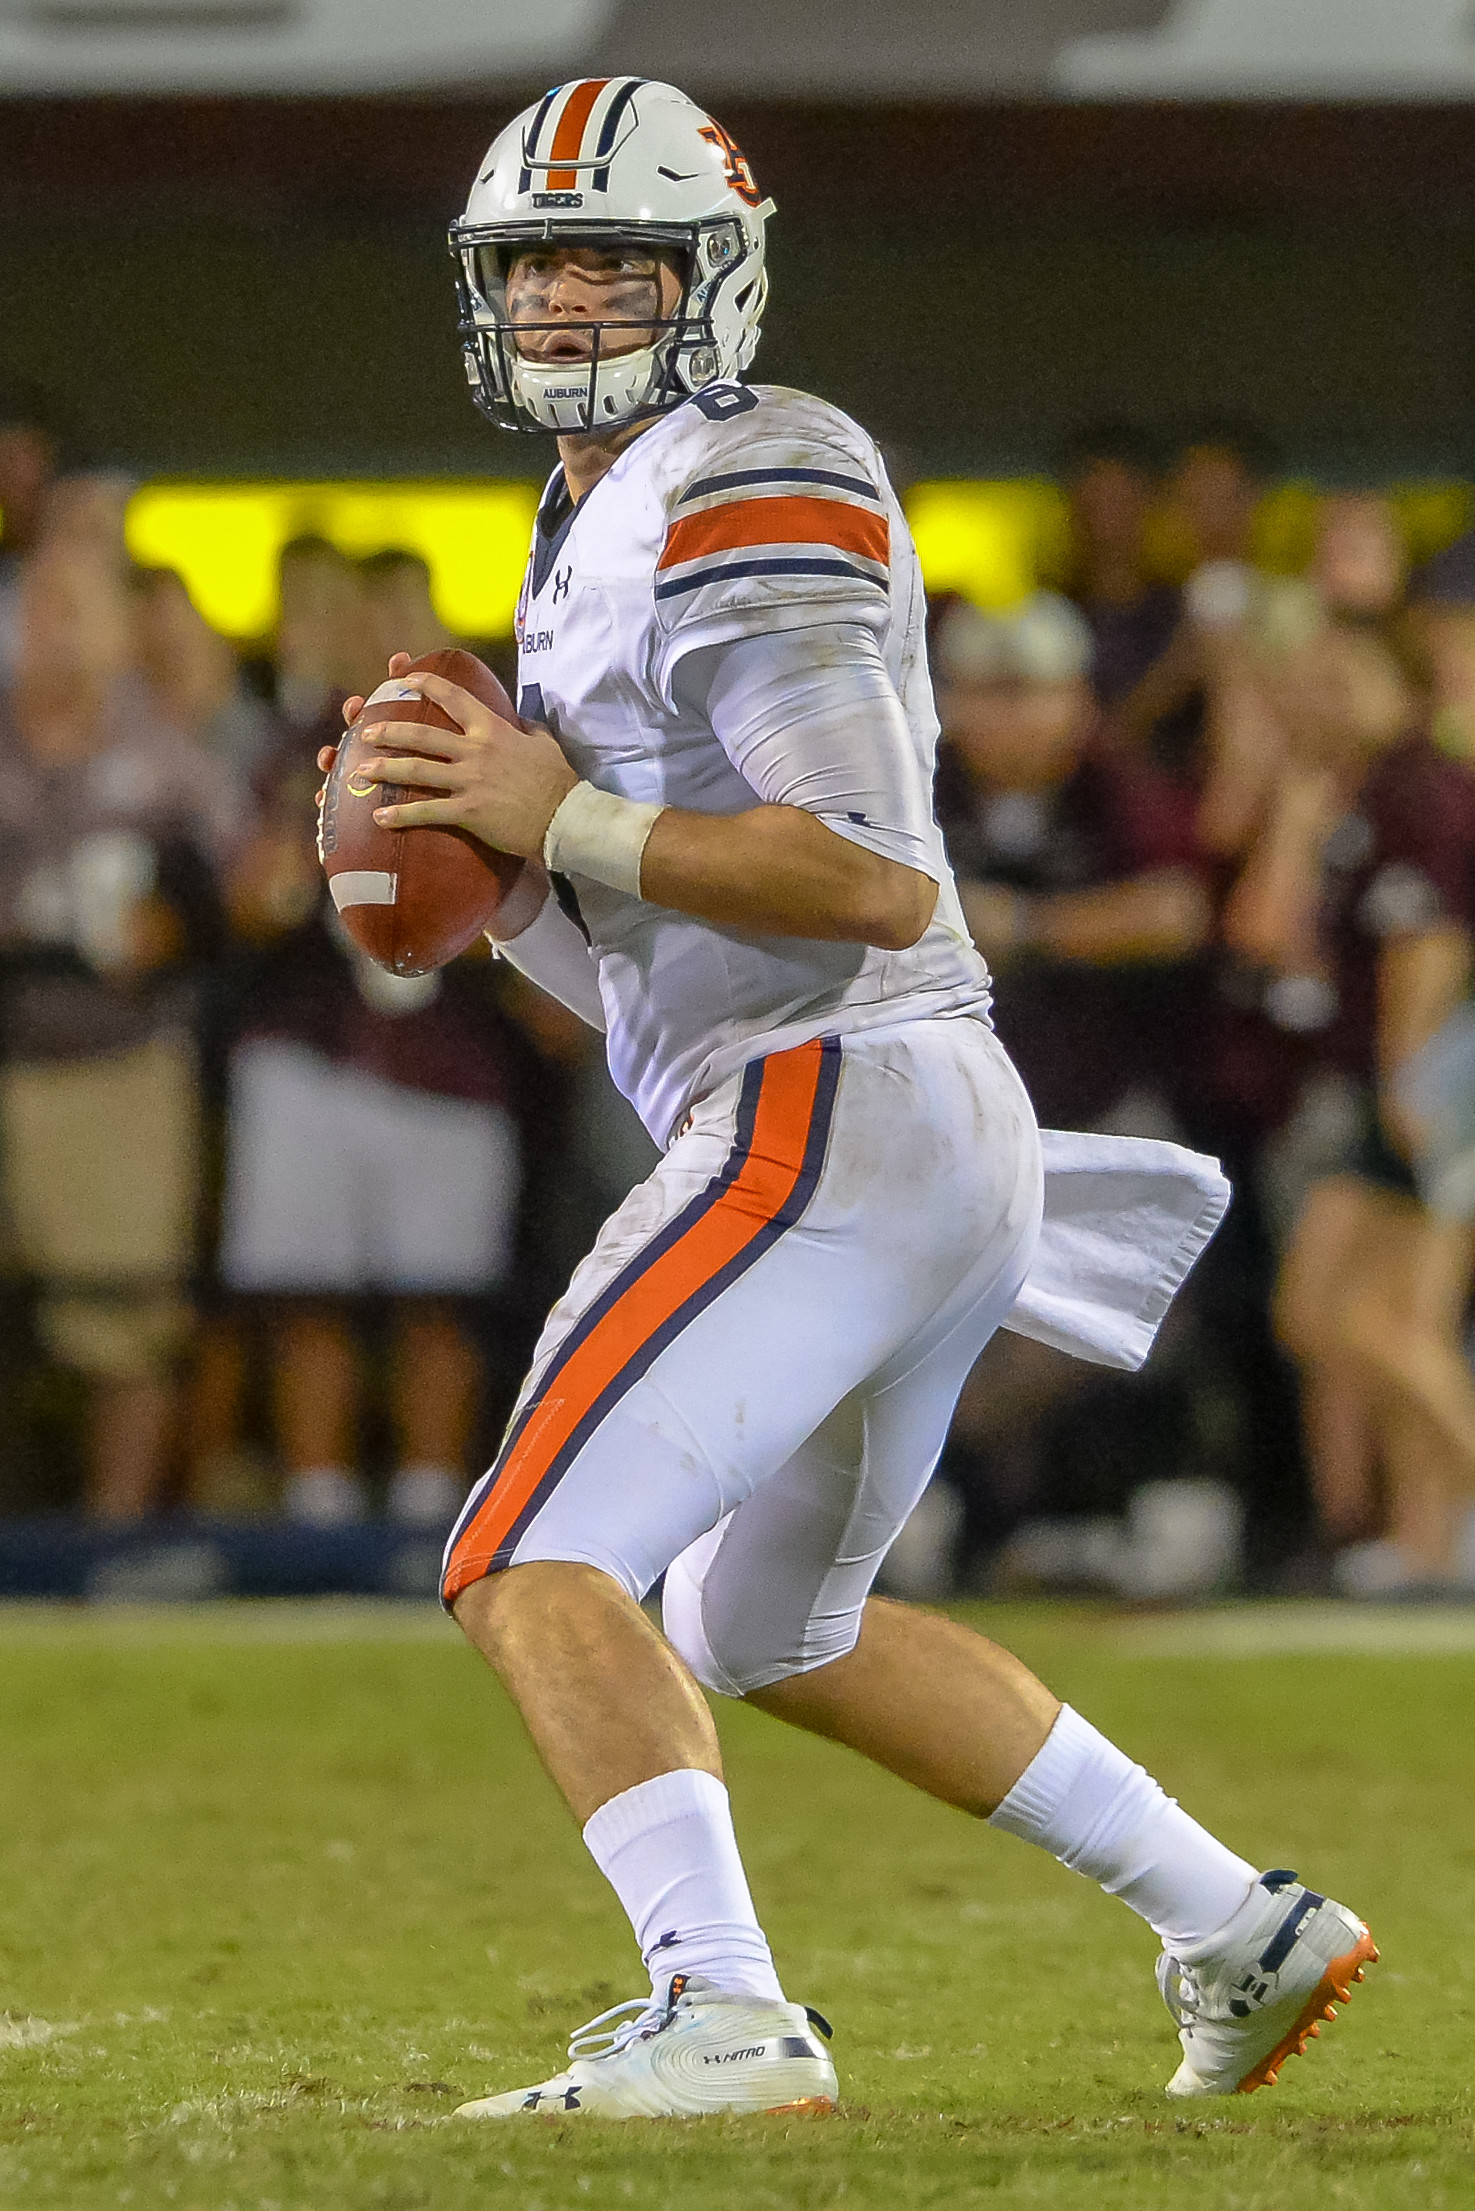 Auburn Tigers quarterback Jarrett Stidham (8) looks to throw downfield during the second half of Saturday's game, at Davis Wade Stadium in Starkville, MS. Daily Mountain Eagle -  Jeff Johnsey